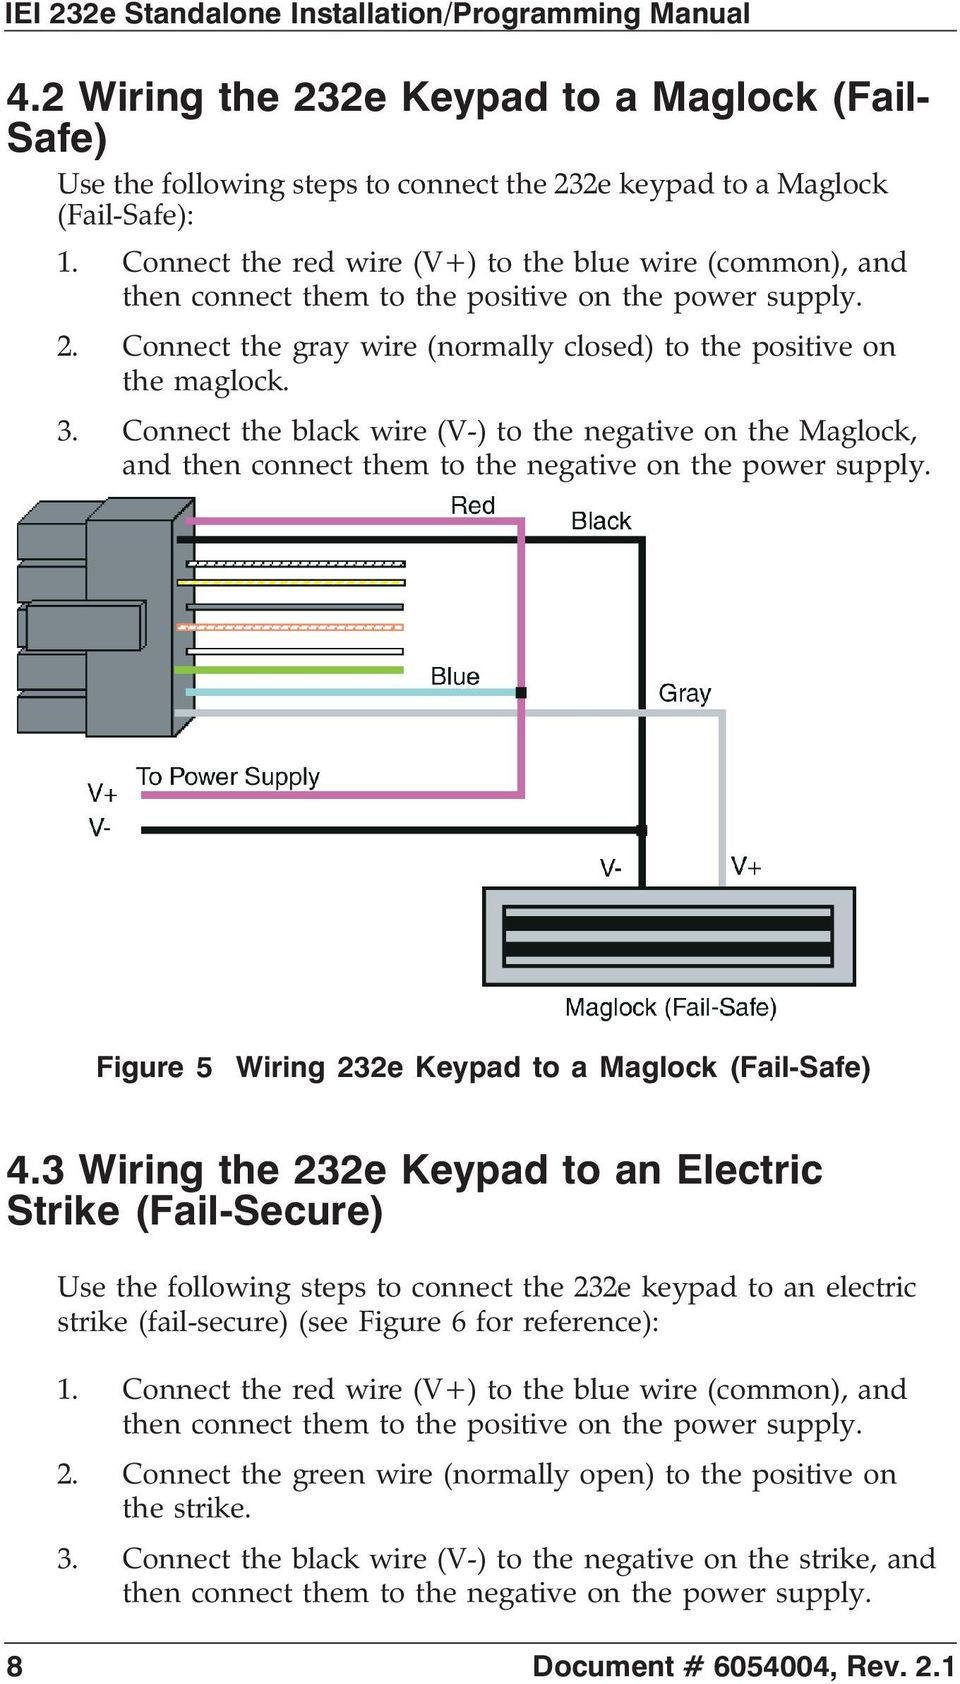 Wiring Diagram To Maglock Iei Keypad Libraries 212se 232e Standalone Tm Installation Programming Manual Pdfconnect The Black Wire V